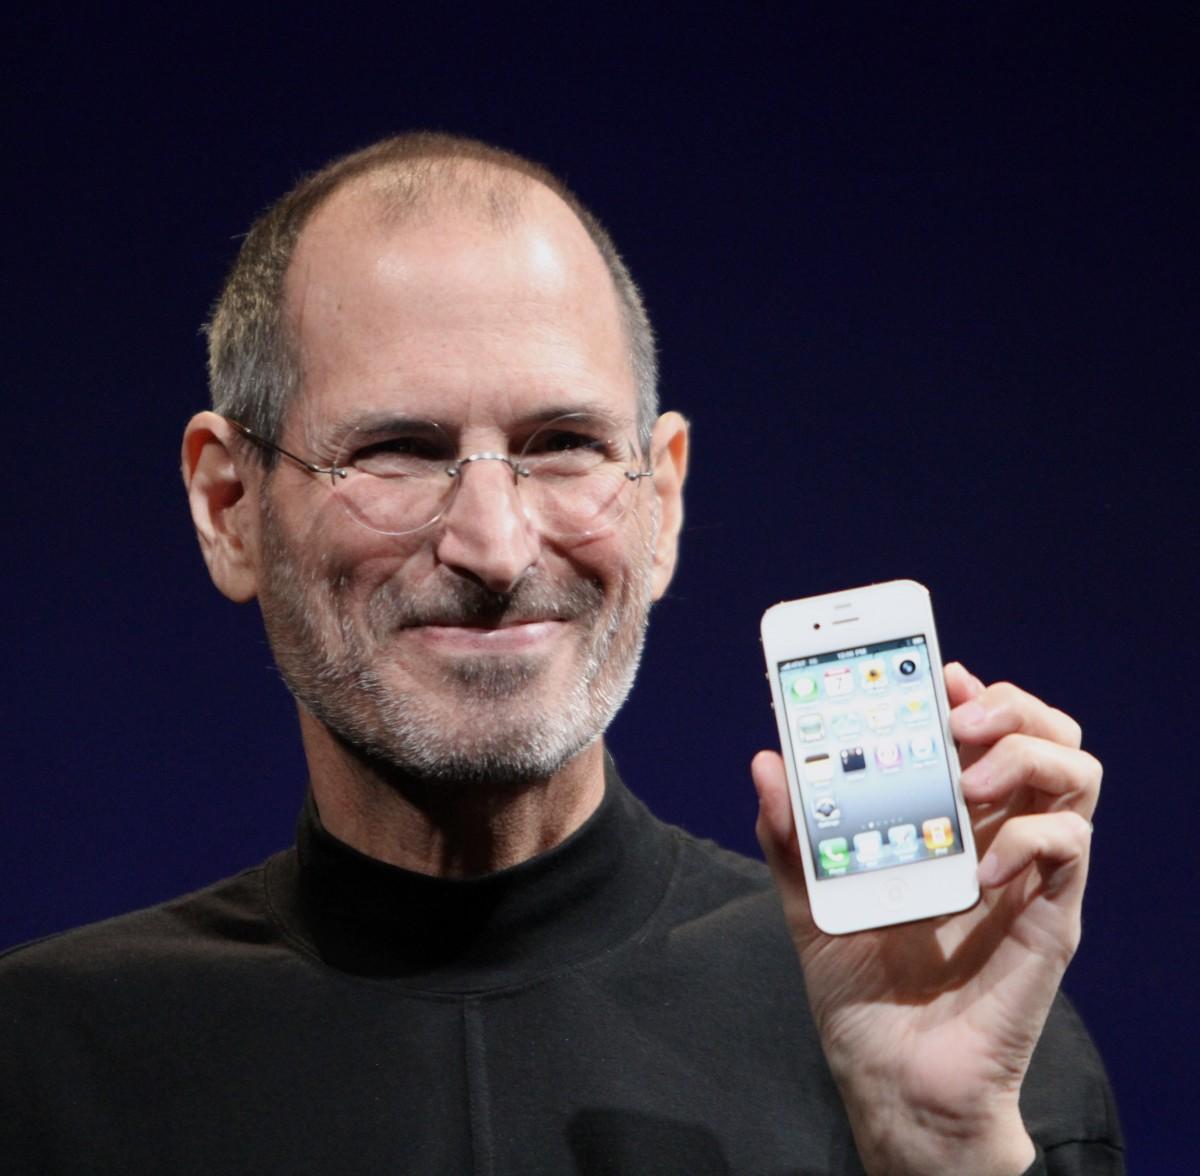 Steve Jobs holding the futuristic iPhone 4.